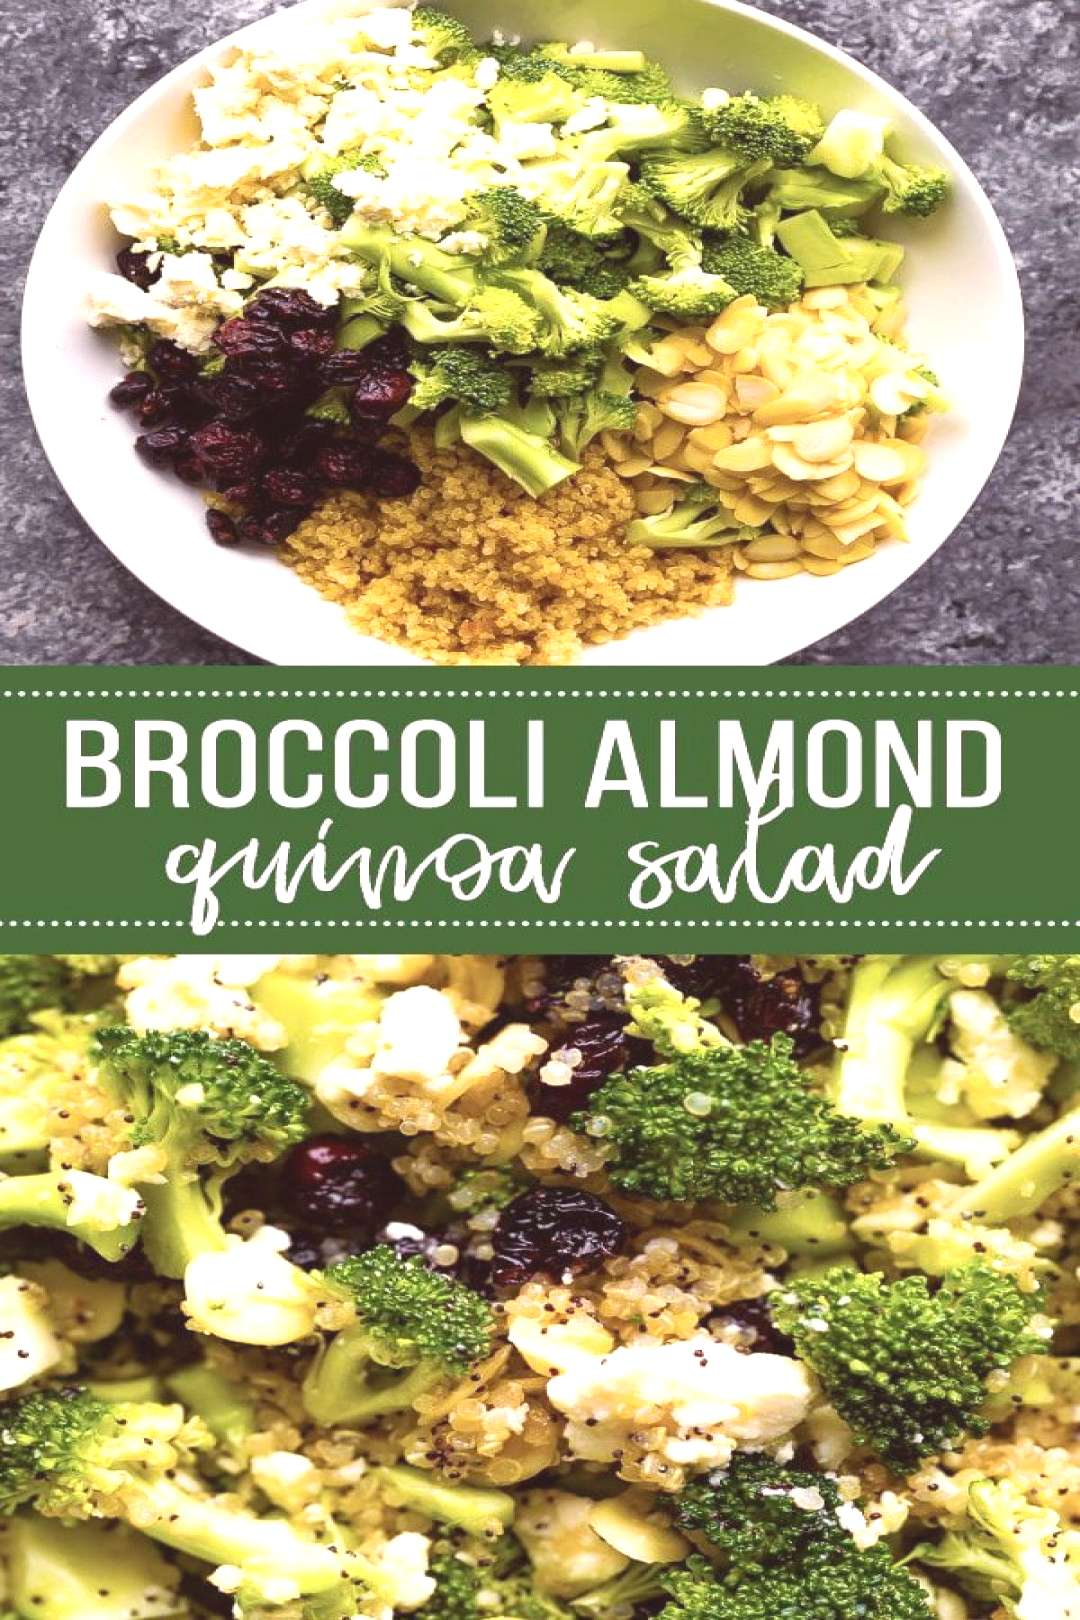 Broccoli Salad Recipe with Almonds and Quinoa,Broccoli salad recipe gets a healthy makeover w... Br